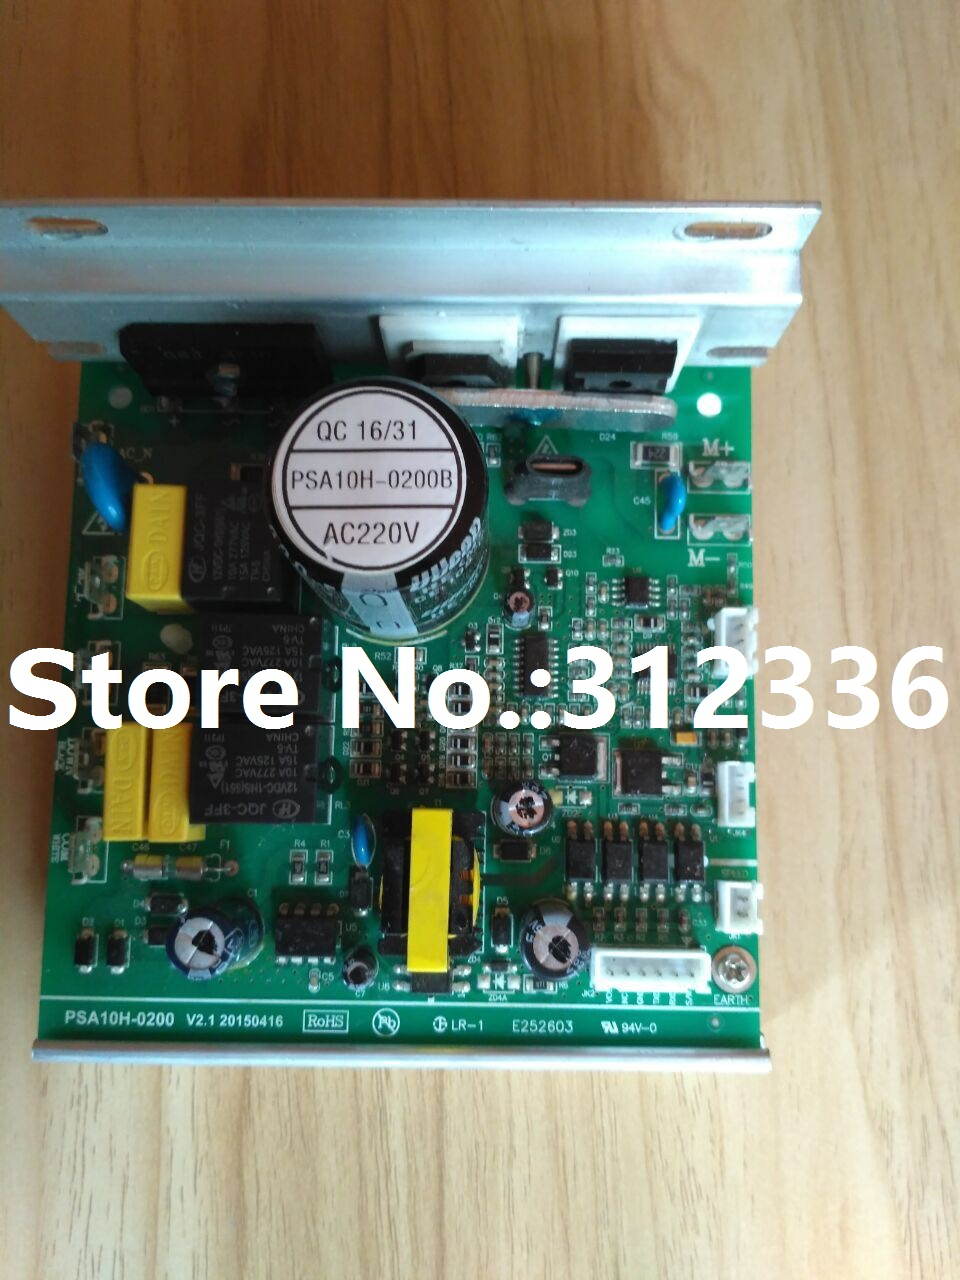 Free Shipping PSA10H-0200 Motor controller optimal health treadmill circuit board motherboard fast shipping dc motor for treadmill model a17280m046 p n 243340 pn f 215392